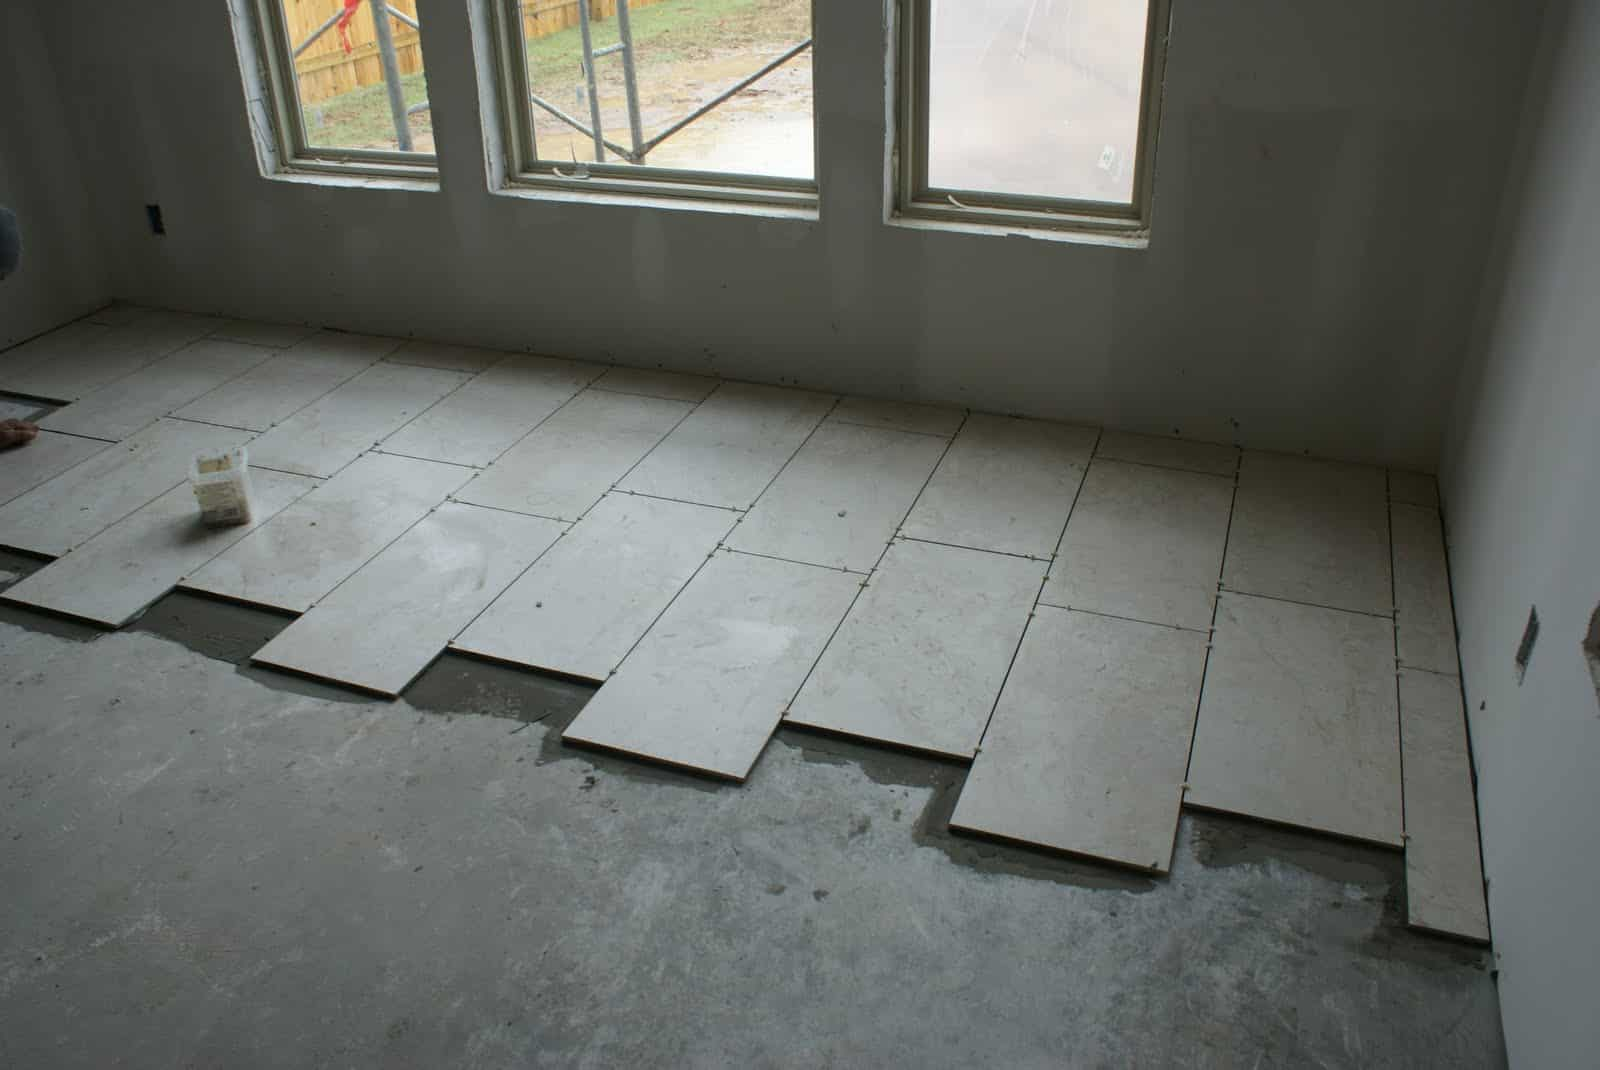 Laying Floor Tiles Style Contemporary Tile Design Ideas From Around The World